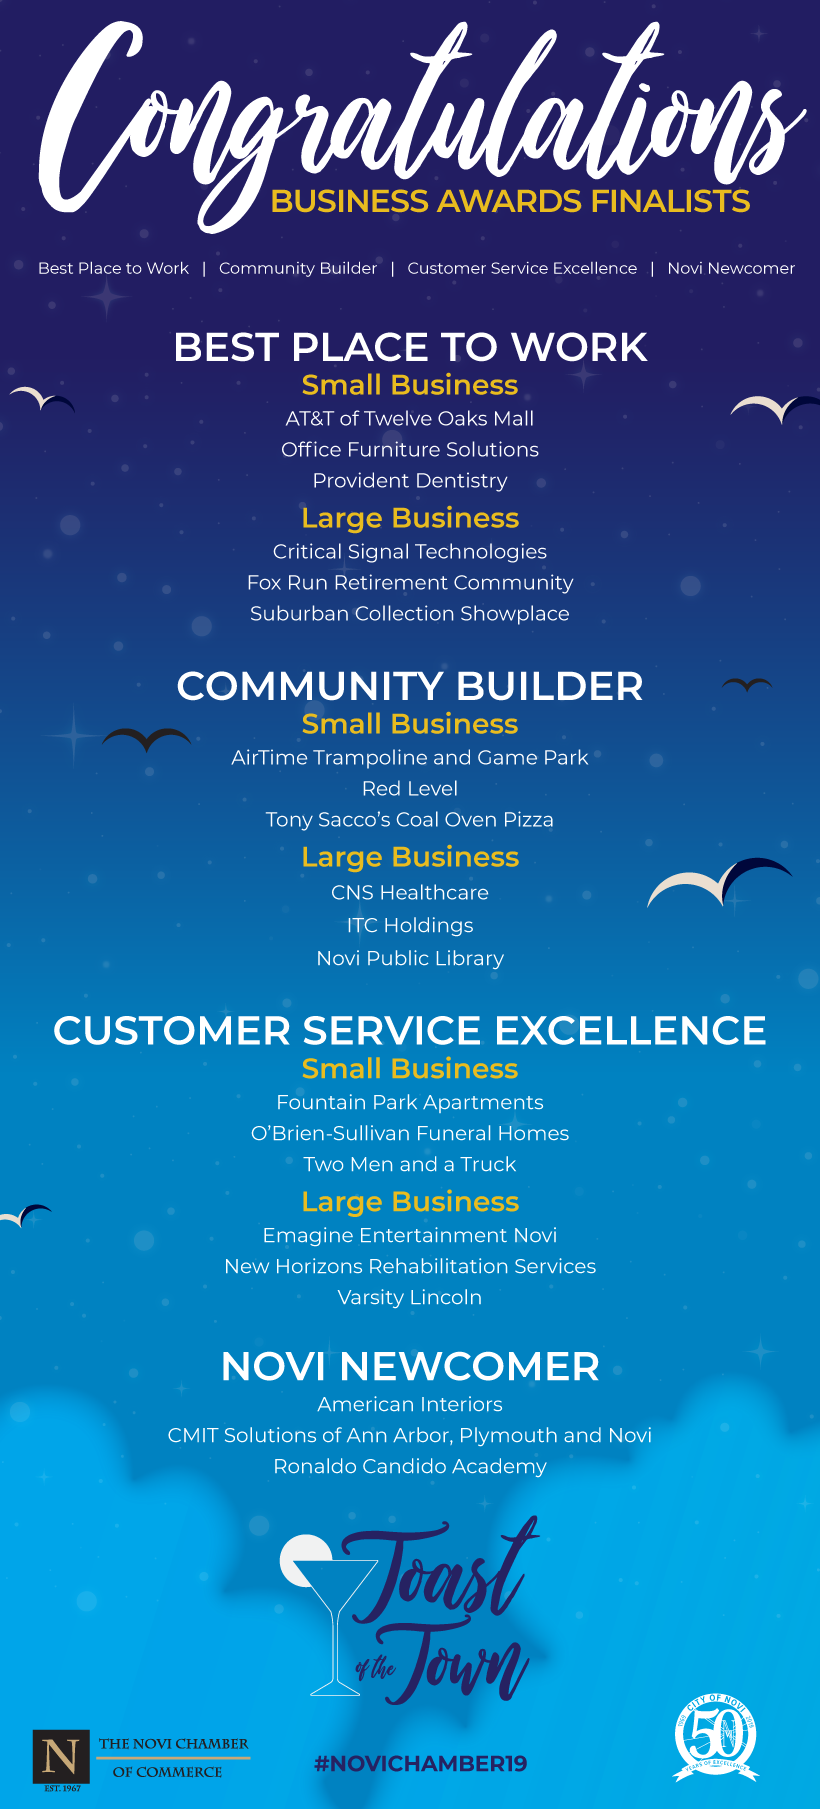 Cns Healthcare Is A Finalist For The Novi Community Builder Award Thank You Novi Chamber Of Commerce For Business Awards Office Furniture Solutions Oaks Mall